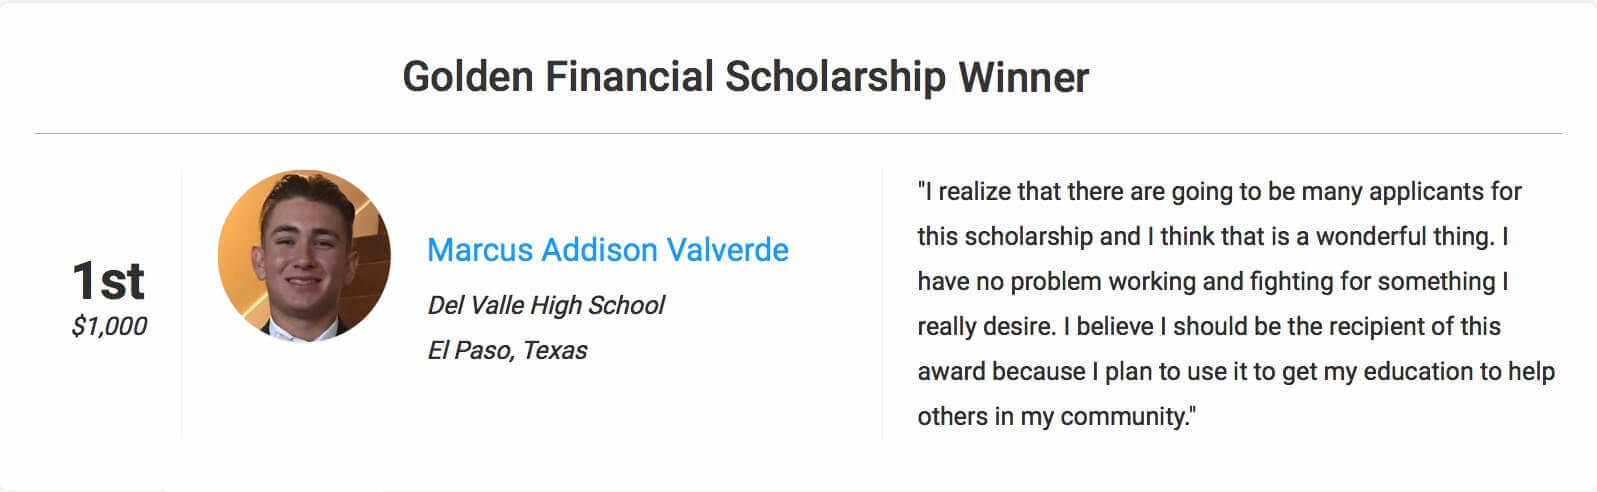 Golden Financial Scholarship contest winner